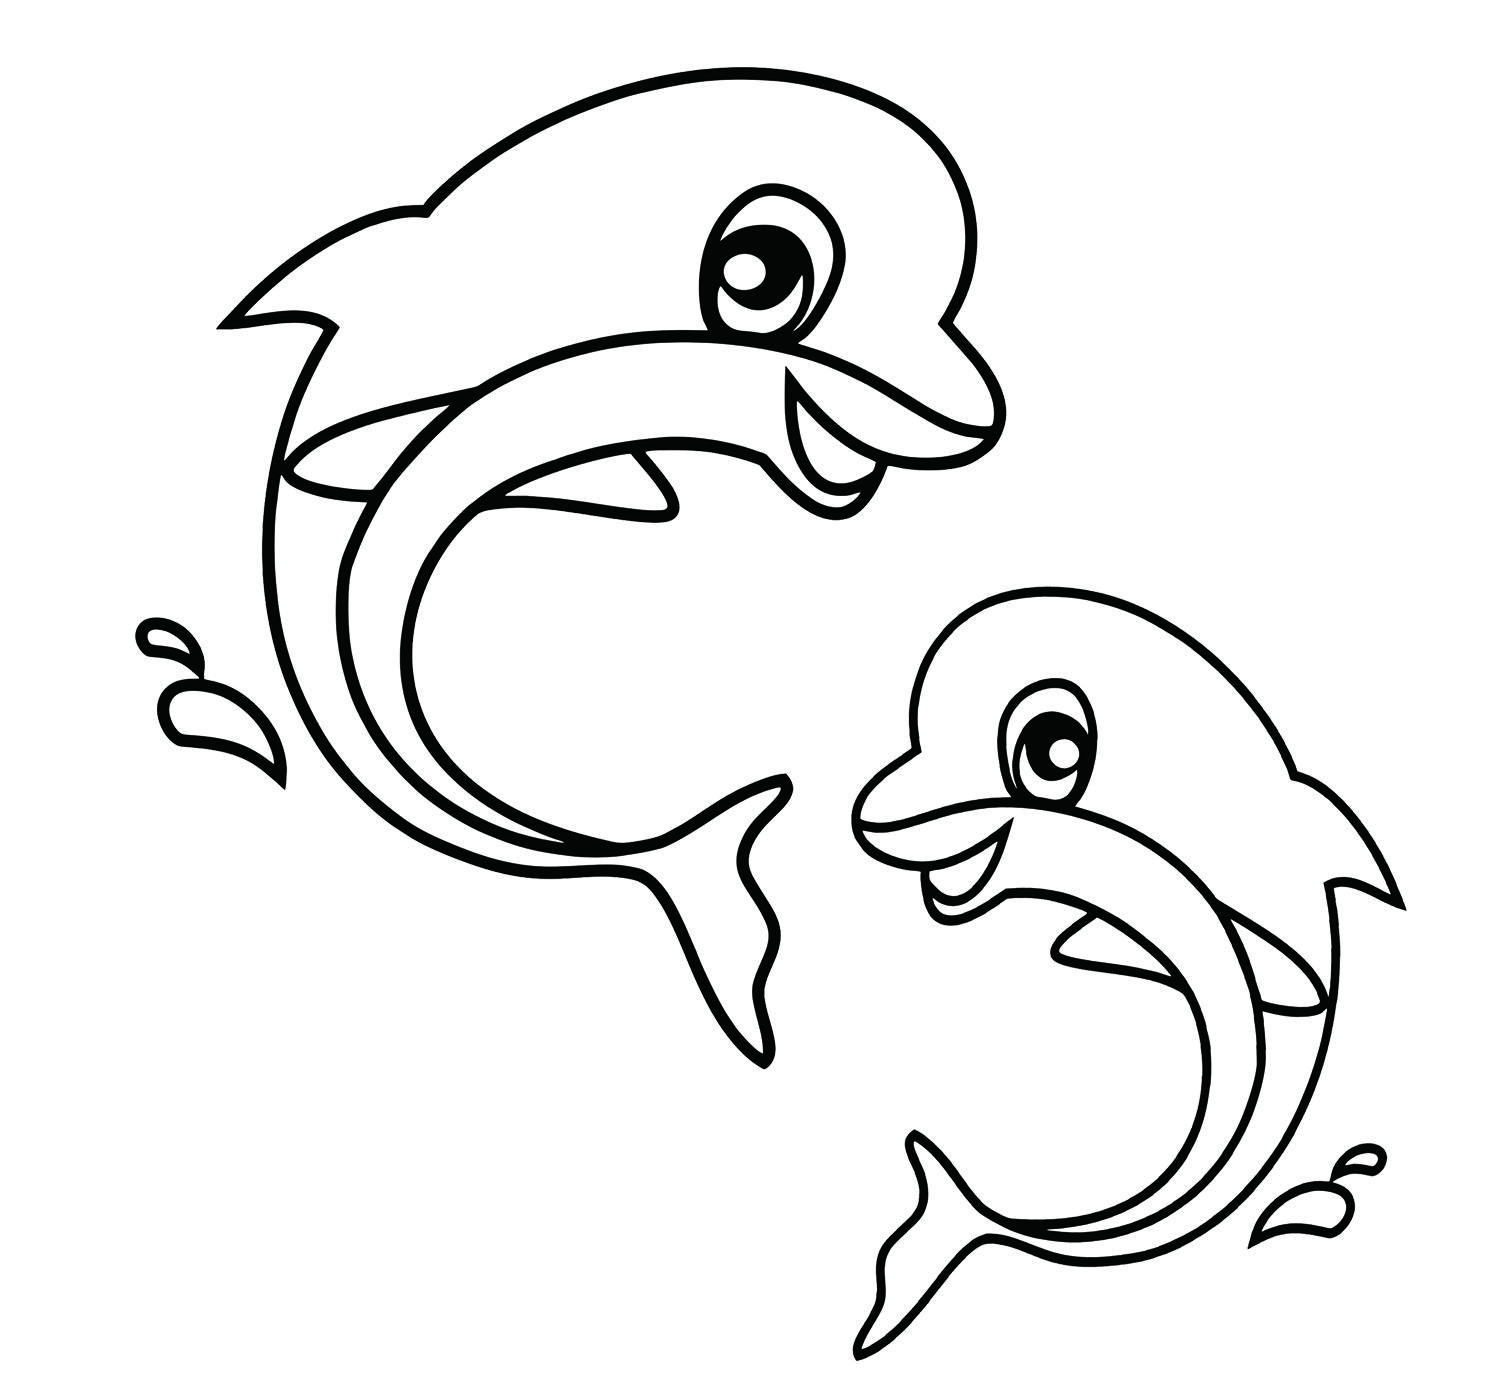 Easy Coloring Pages Dolphin coloring pages, Easy